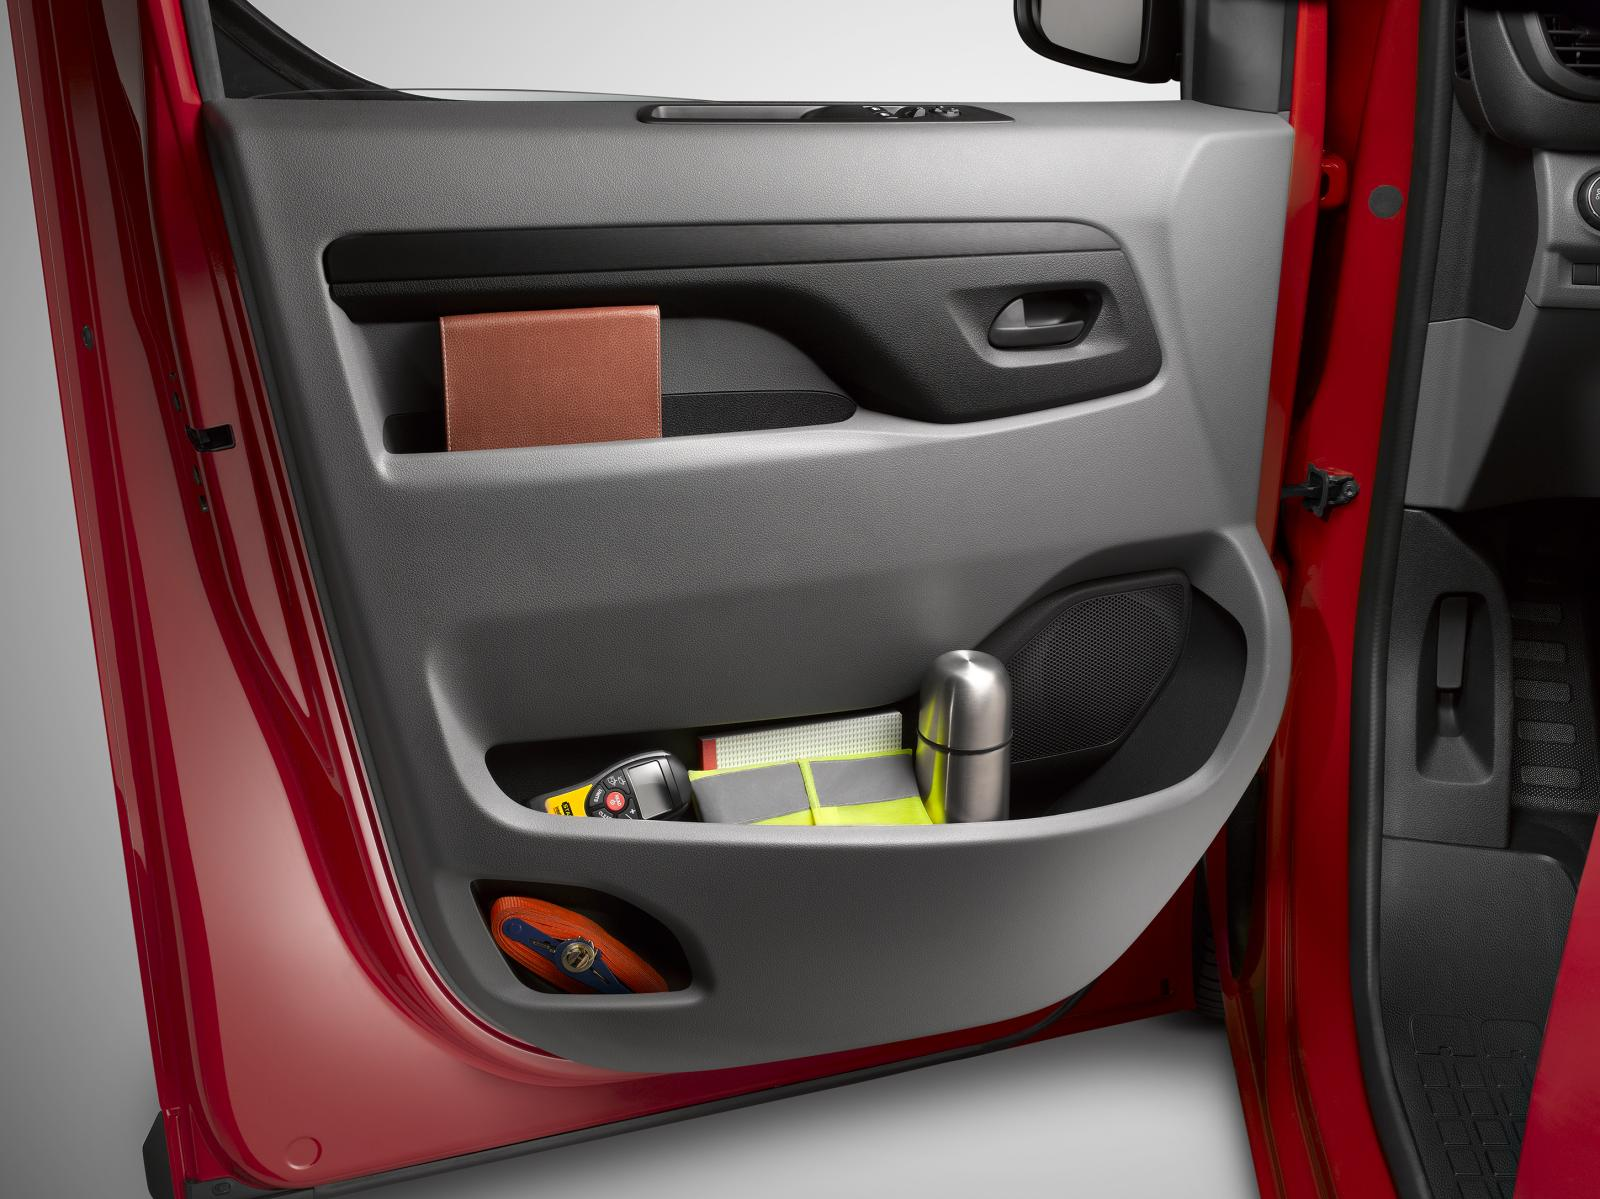 Jumpy 3rd generation 2016 door storage